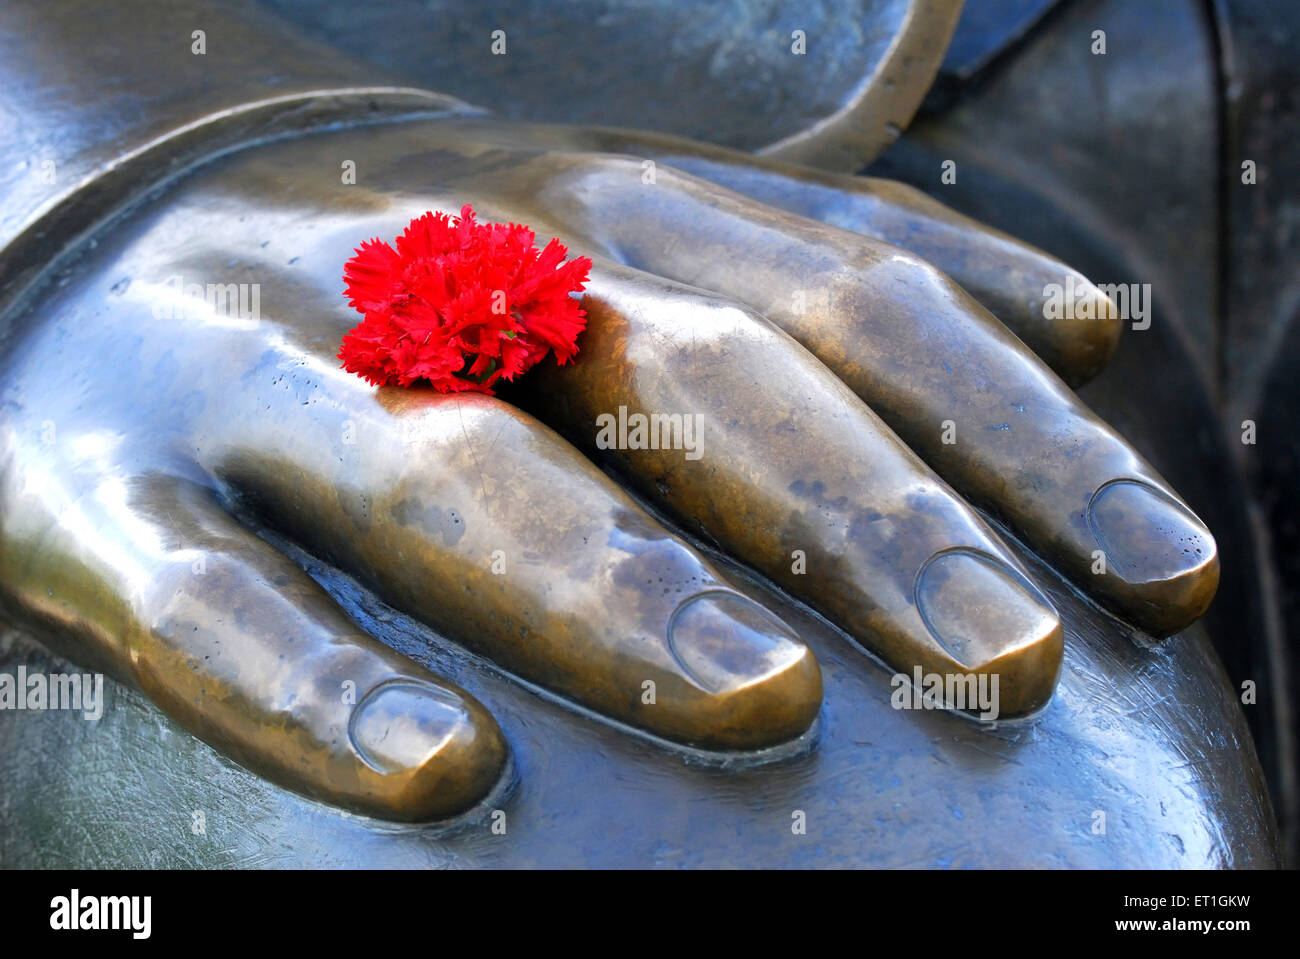 Token of respect with red carnation ; Germany - Stock Image